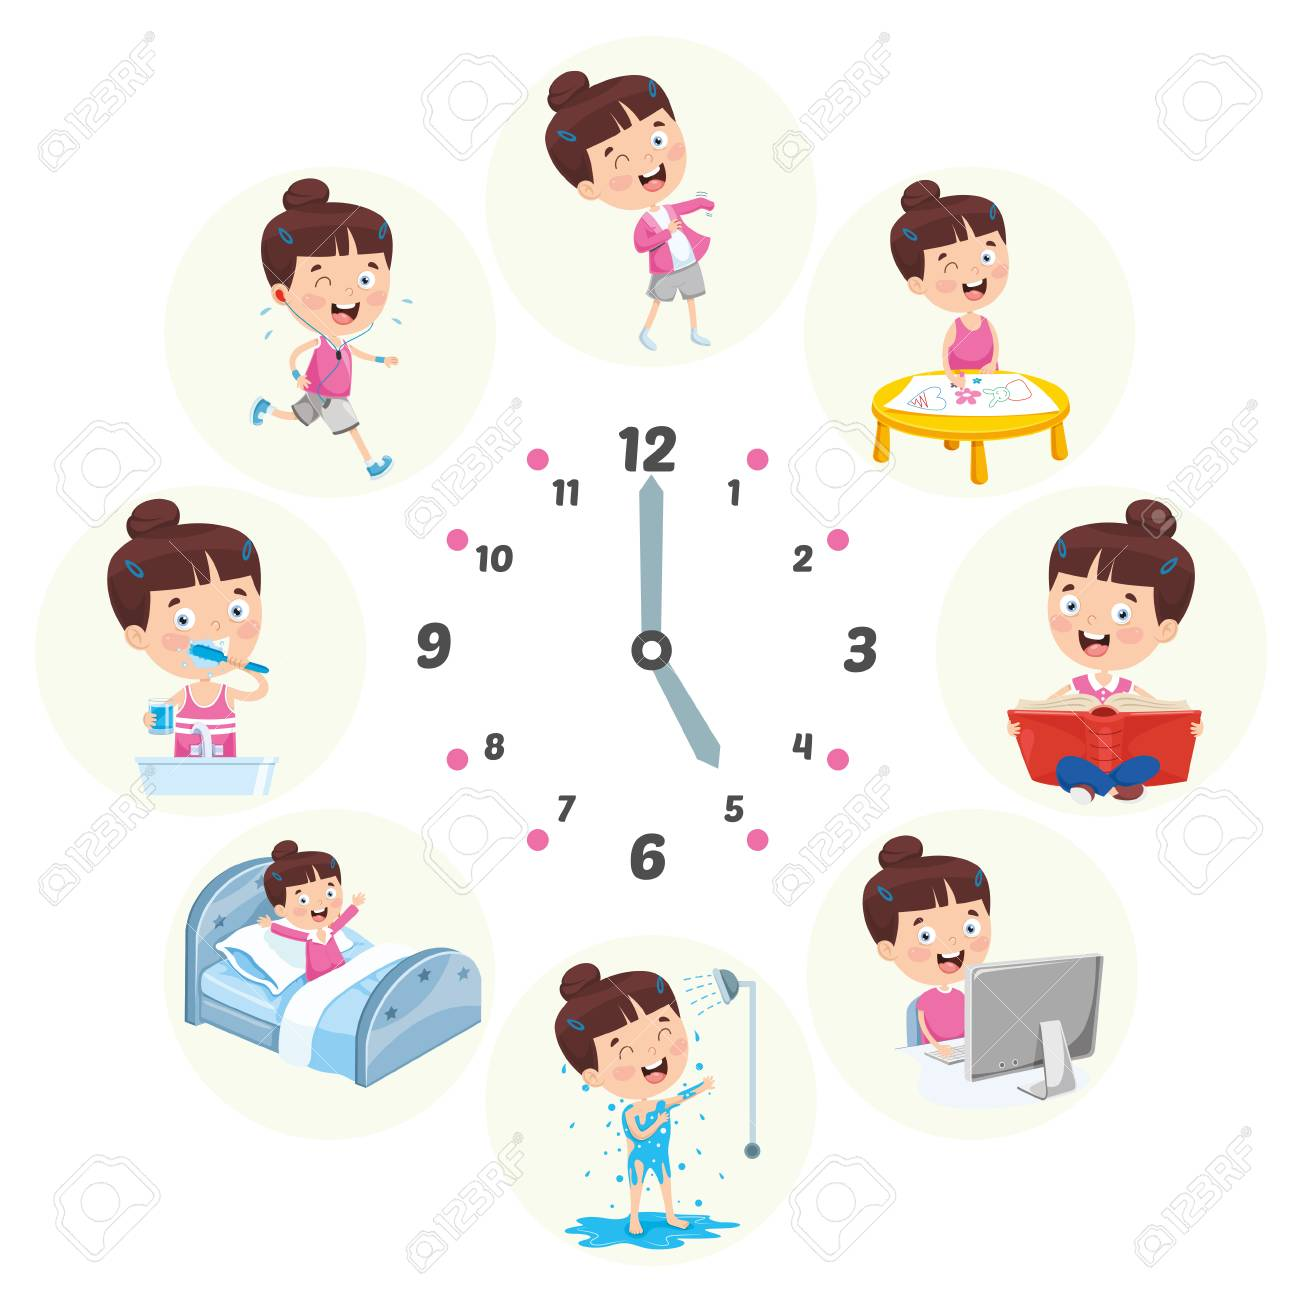 Vector Illustration Of Kids Daily Routine Activities - 114778569